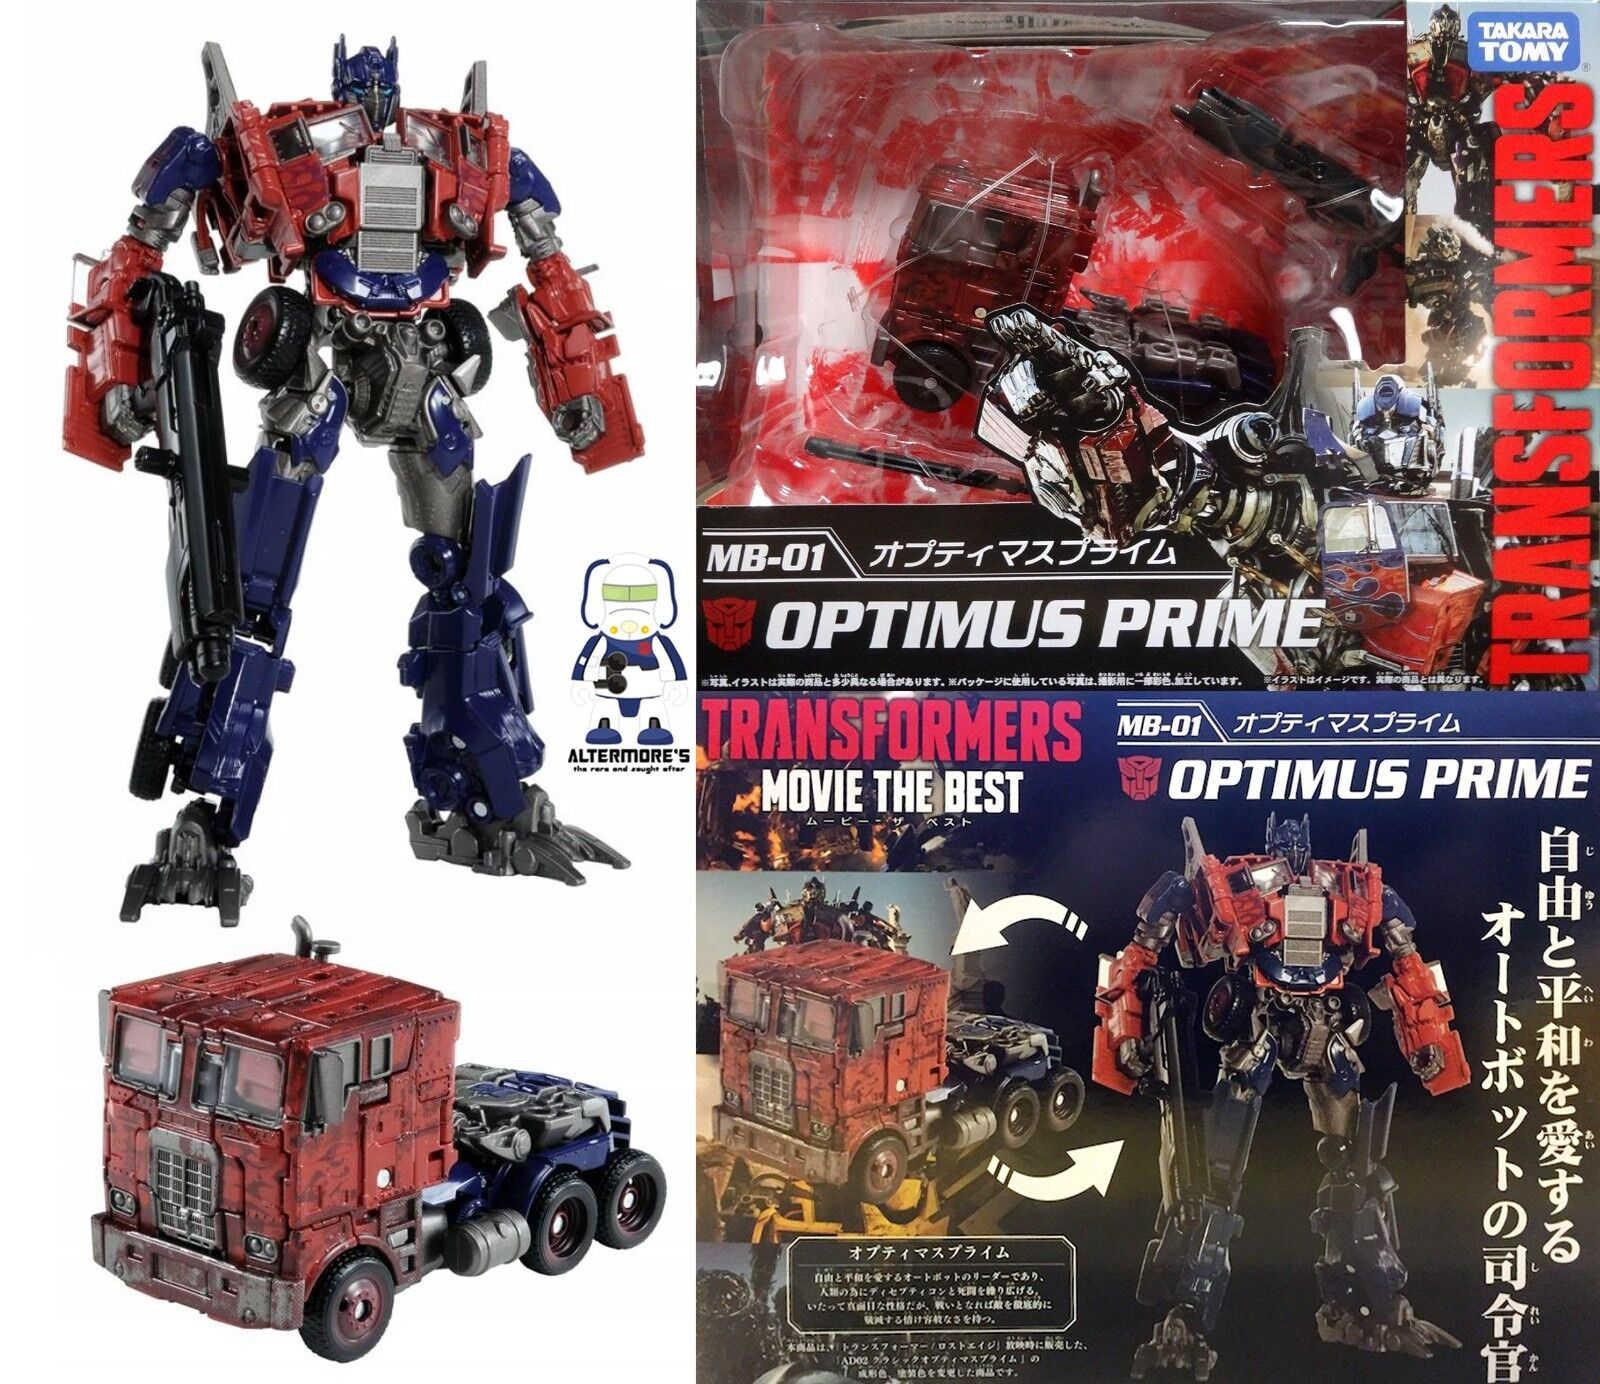 Transformers Age of Extinction MB-01 Movie 10th Anniversary Optimus Prime MISB